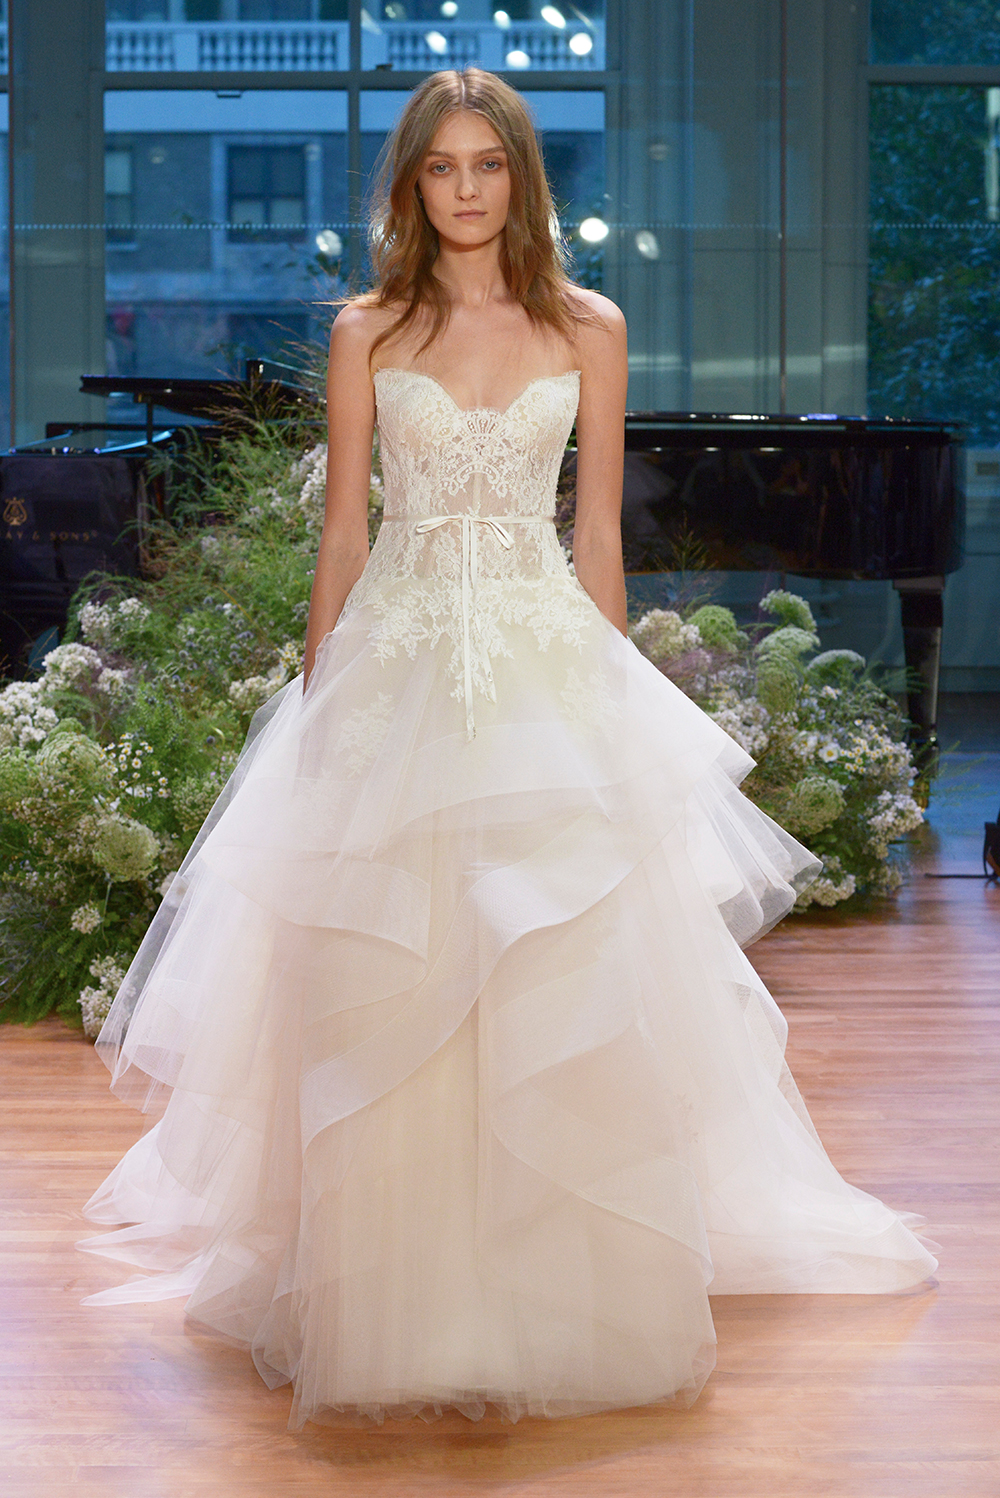 Tresor - Monique Lhuillier Fall 2017 Bridal Collection. www.theweddingnotebook.com